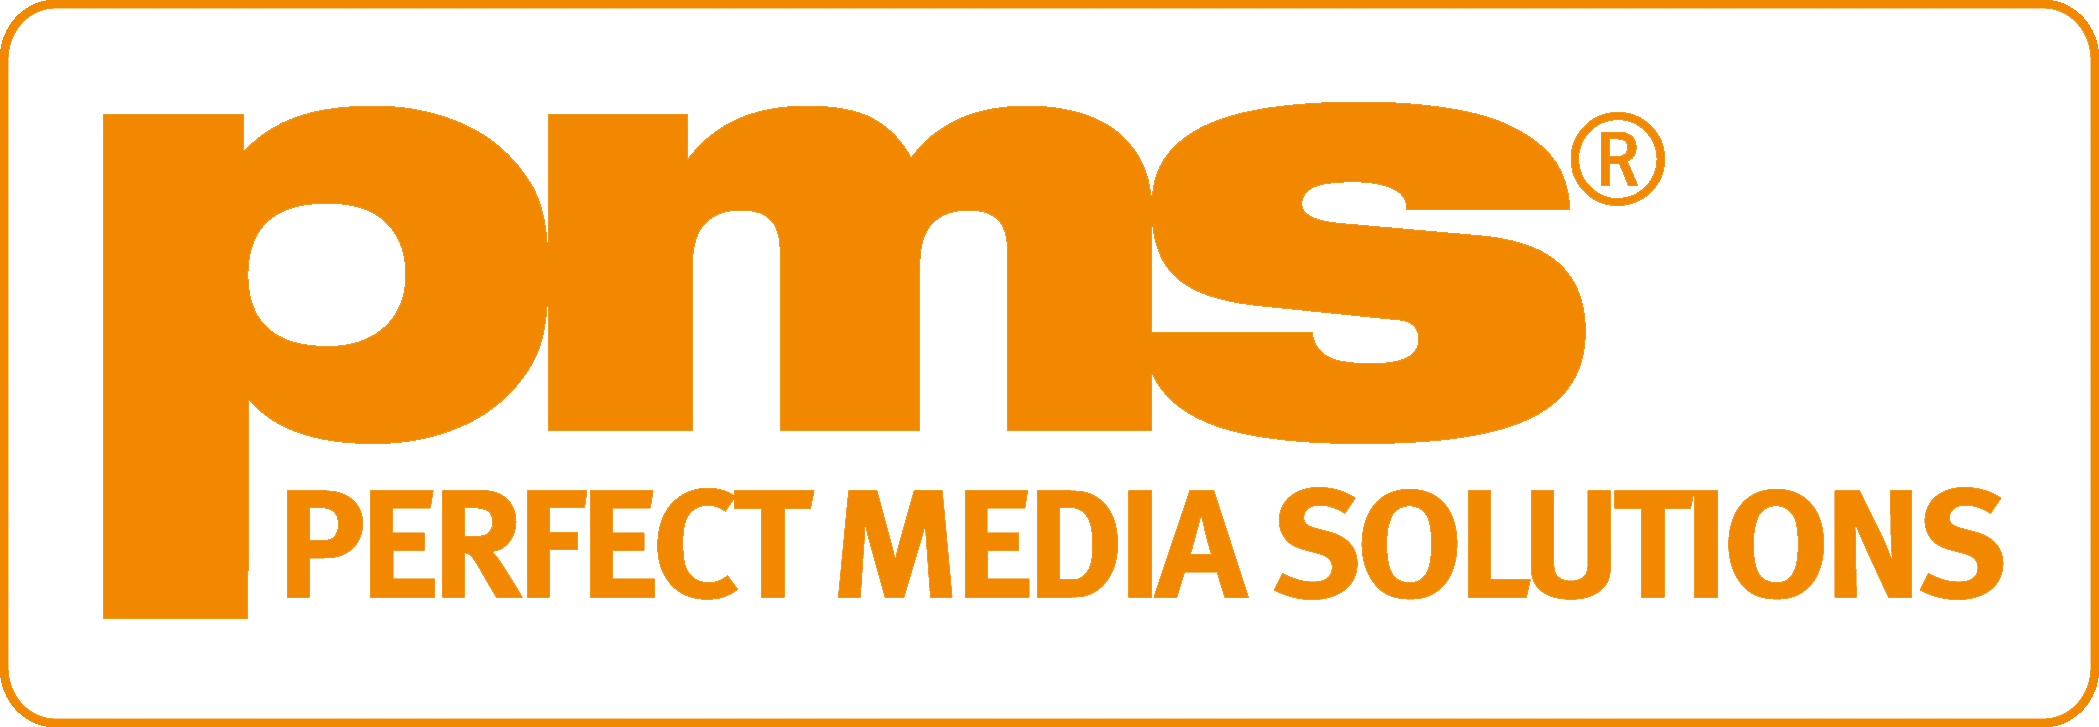 PMS Perfect Media Solutions